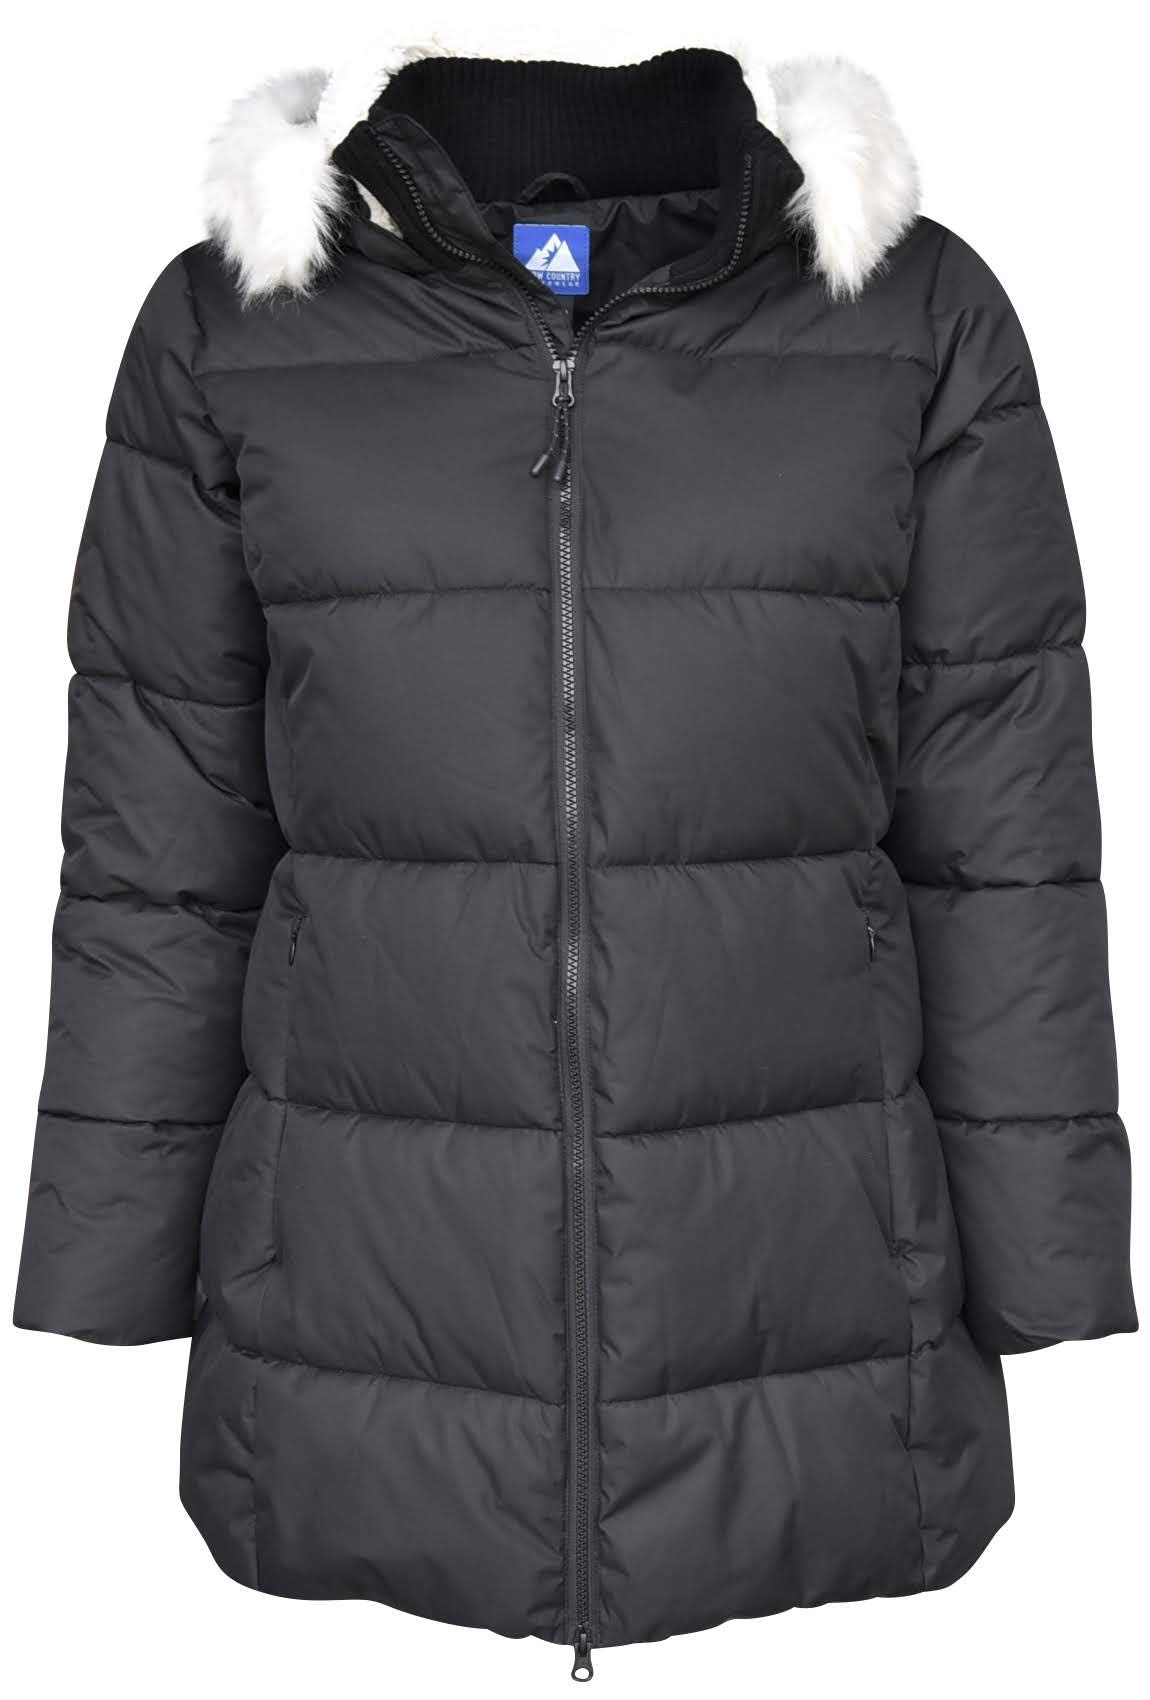 Snow Country Outerwear Women's Extended Plus Size Chelsea Down Alternative Parka Coat Jacket